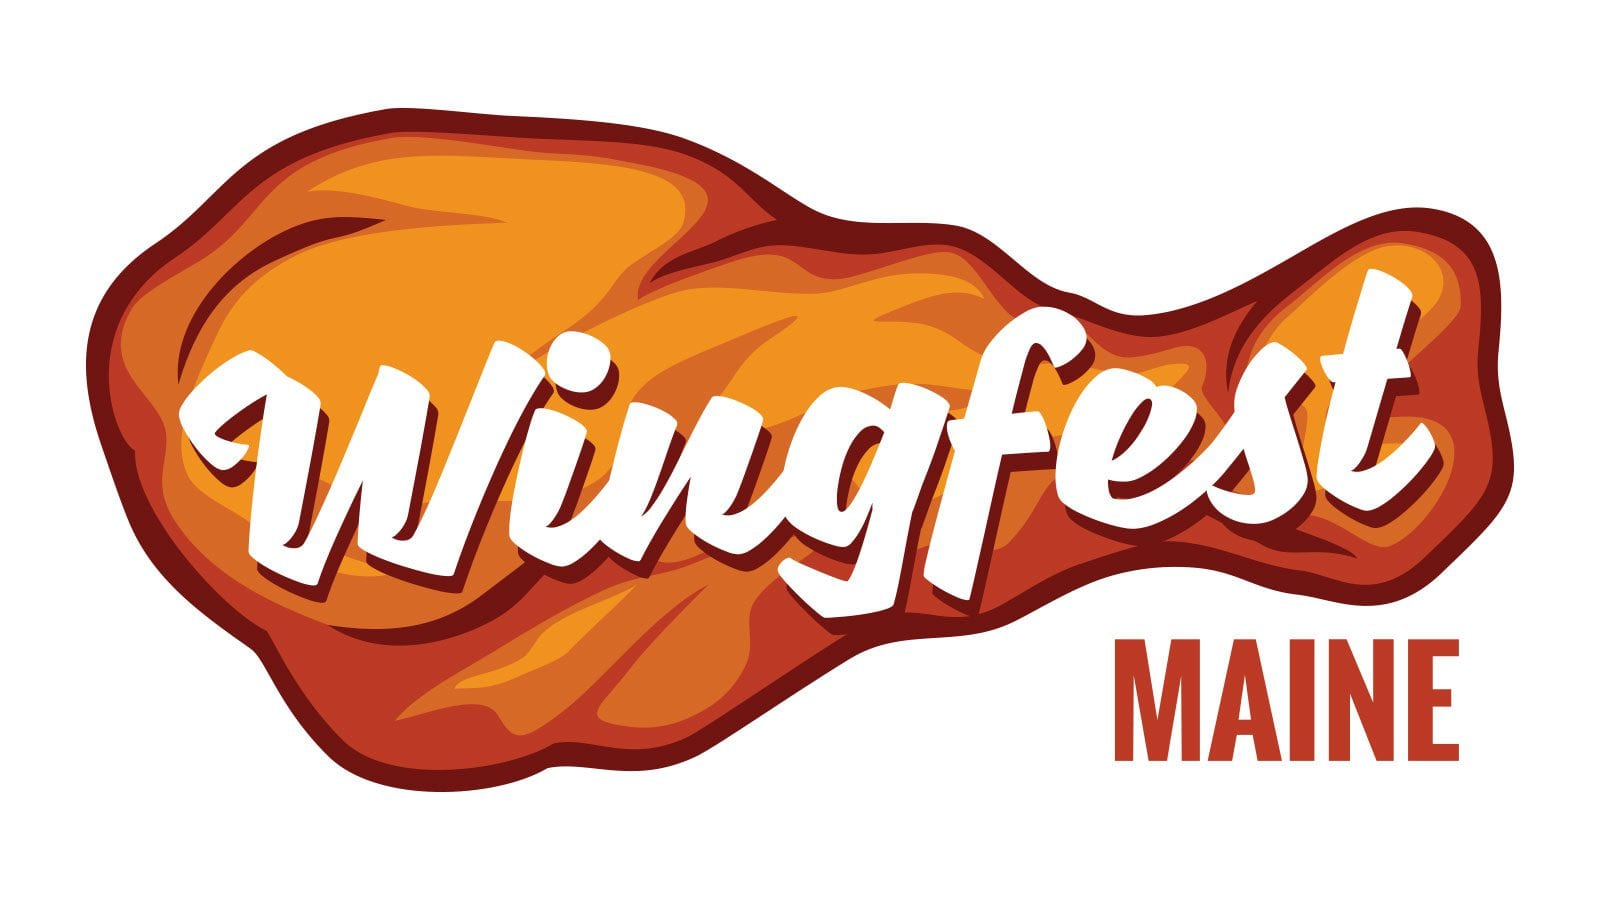 wingfest maine logo